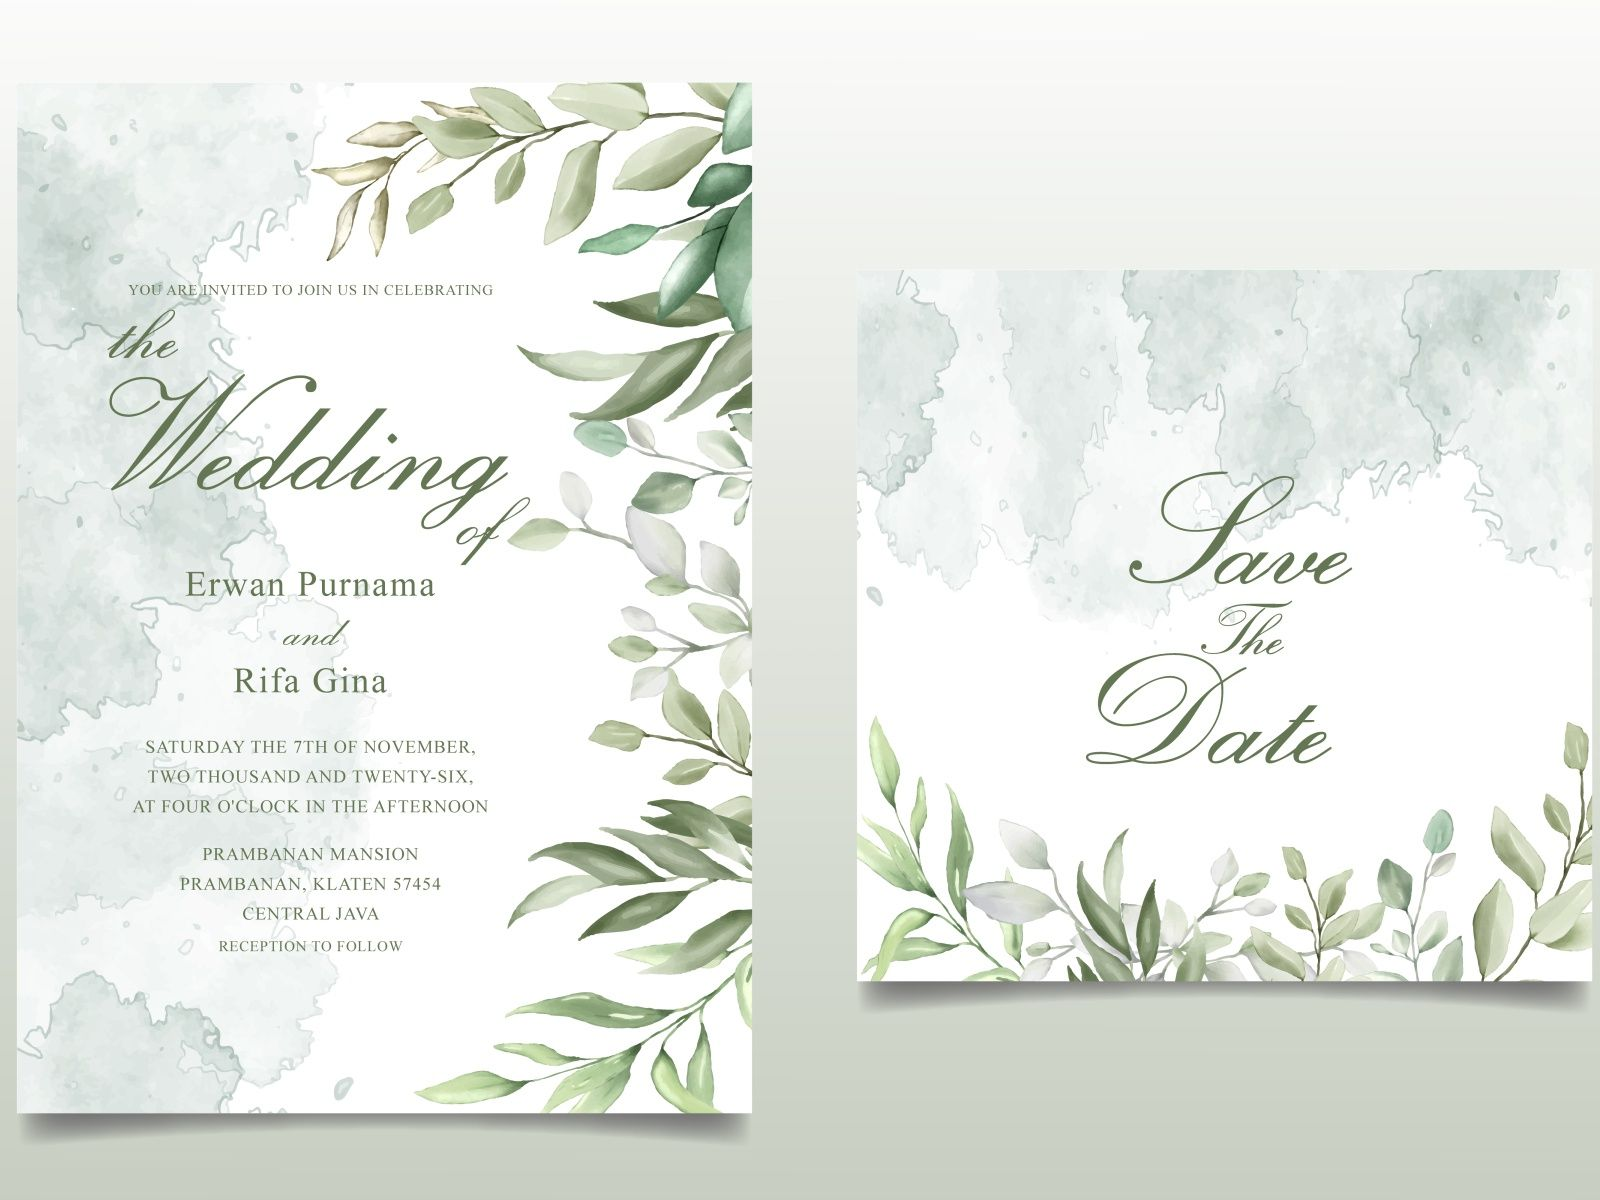 Elegant Hand Drawn Wedding Invitation Card With Beautiful Leaves Floral Wedding Invitations Hand Drawn Wedding Invitations Watercolor Floral Wedding Invitations